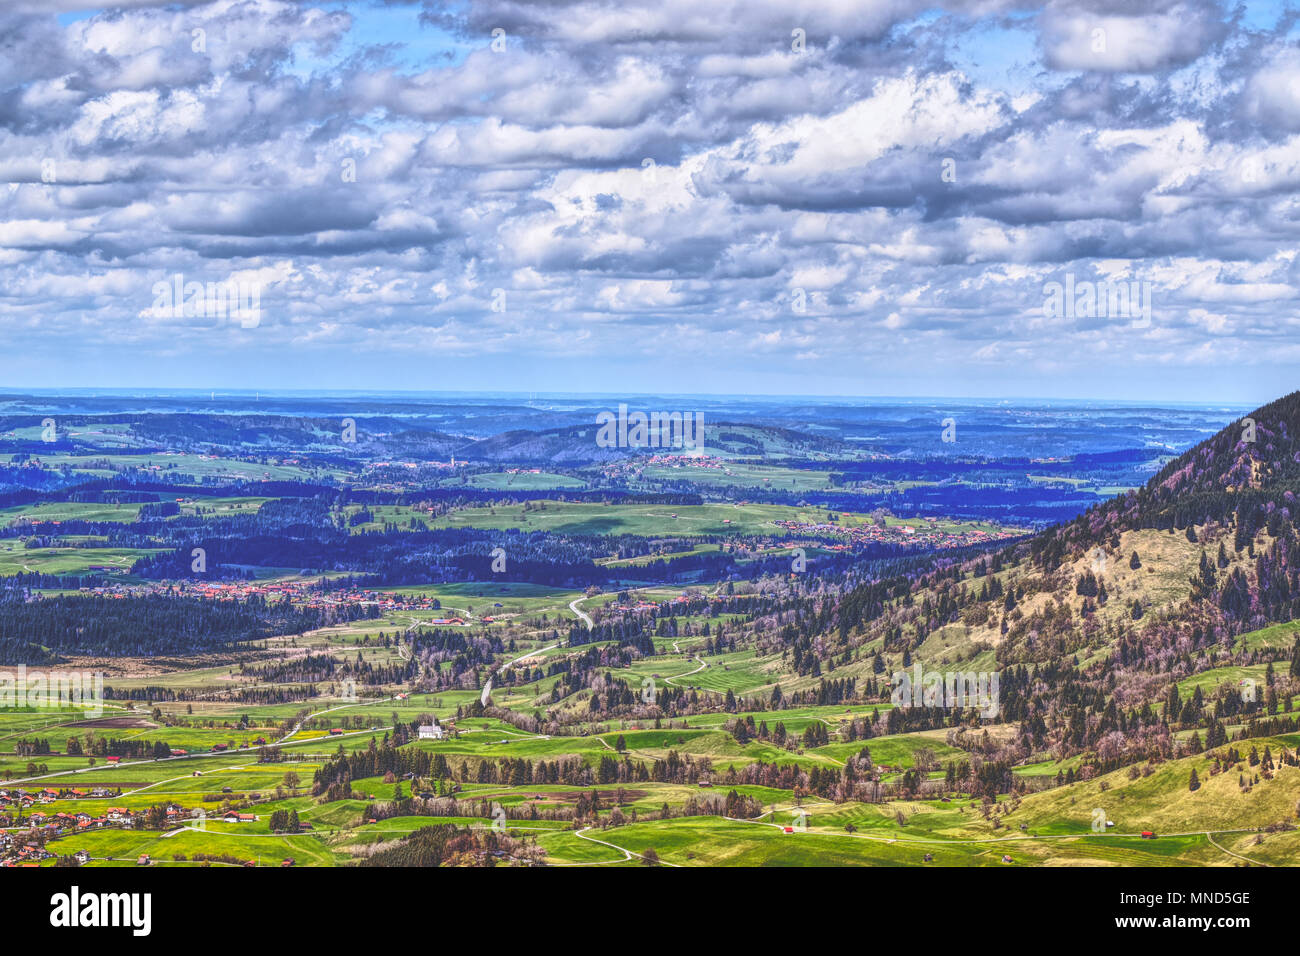 Outlook from the Kofel in Bavaria Germany hike - Stock Image